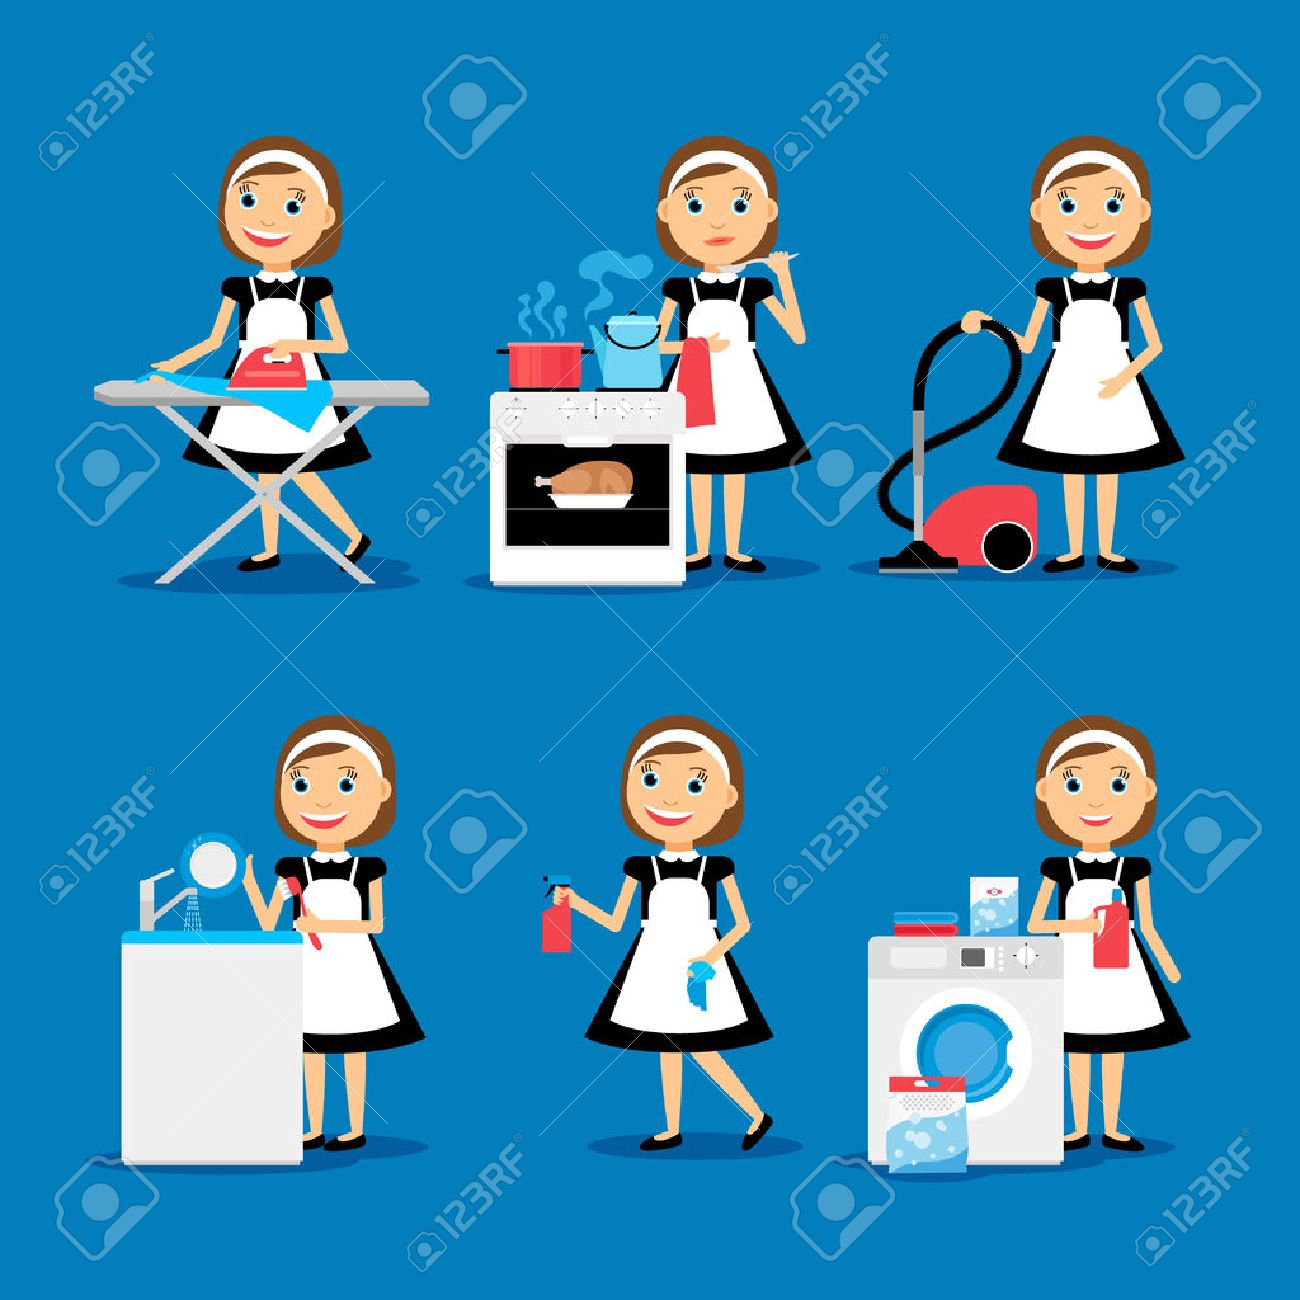 Multitasking housewife Vector illustration. Housekeeper woman ironing, cleaning, cooking and washing - 50582165